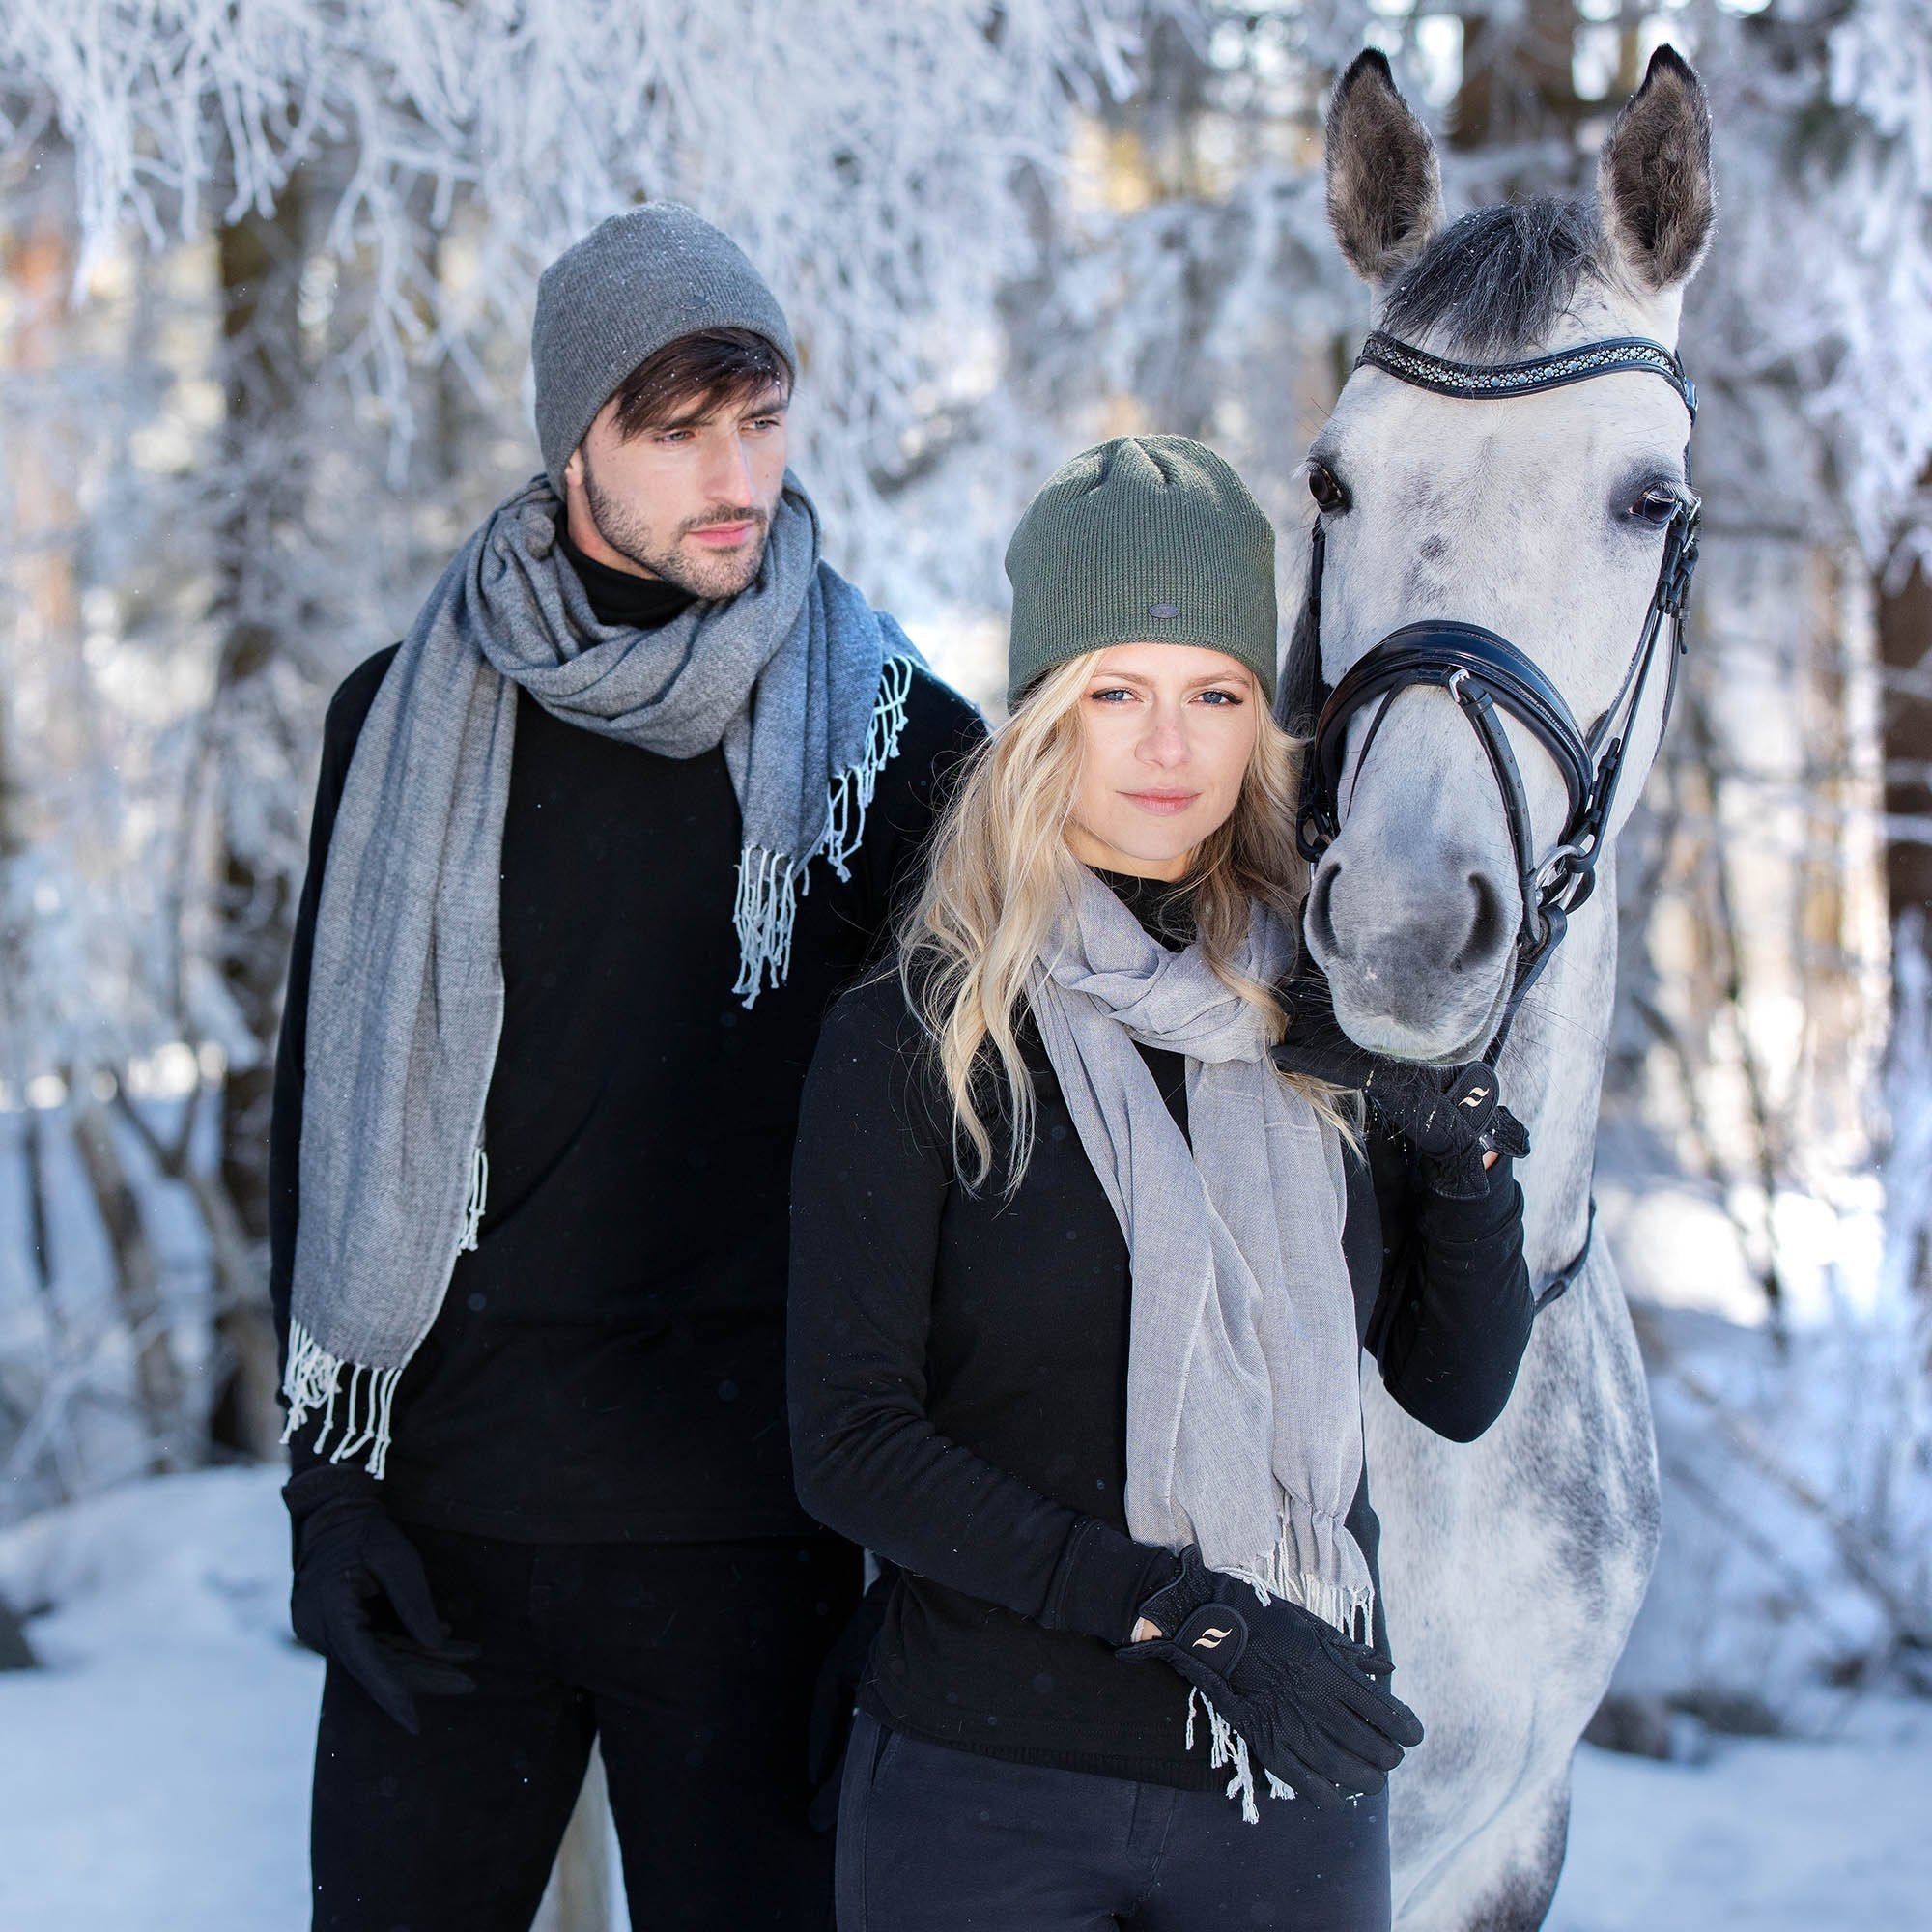 Scarf - Back on Track Sverige (5300123631771)